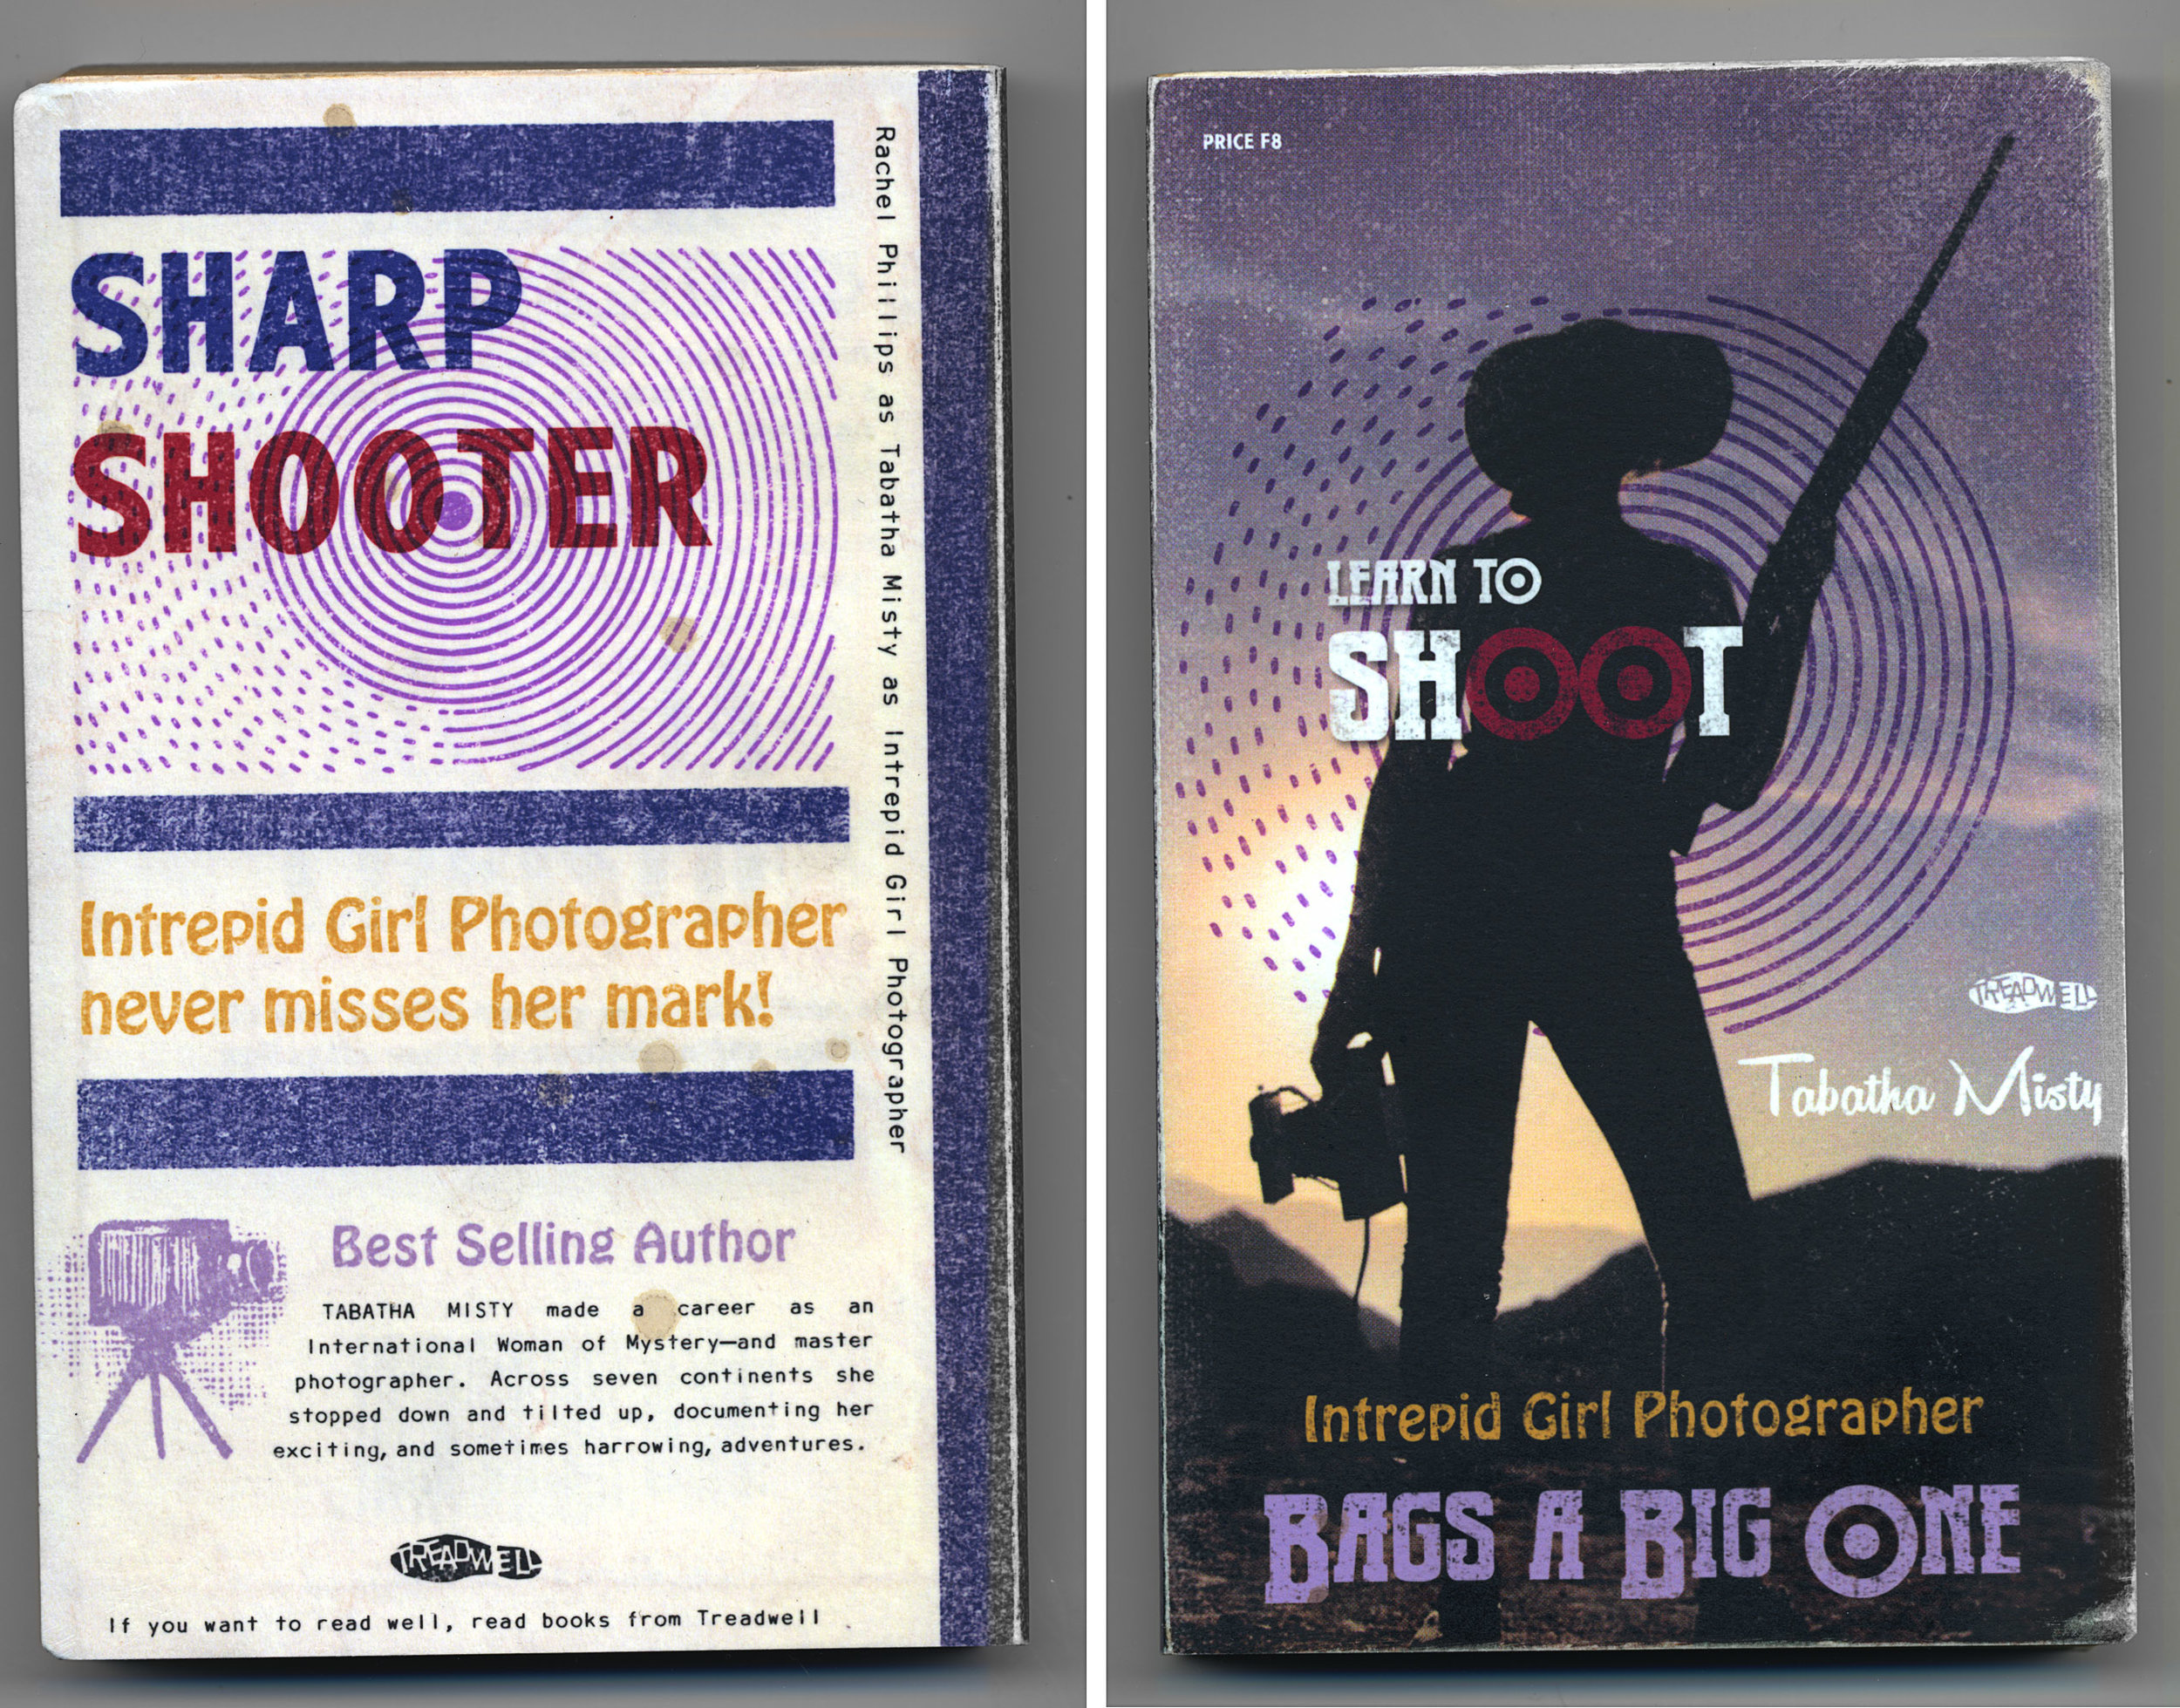 RACHEL PHILLIPS  Learn to Shoot,  2019 from  Intrepid Girl Photographer  Archival pigment print cover around vintage paperback 7 x 4.25 x .5 inches Edition Varée of 5 + 1AP